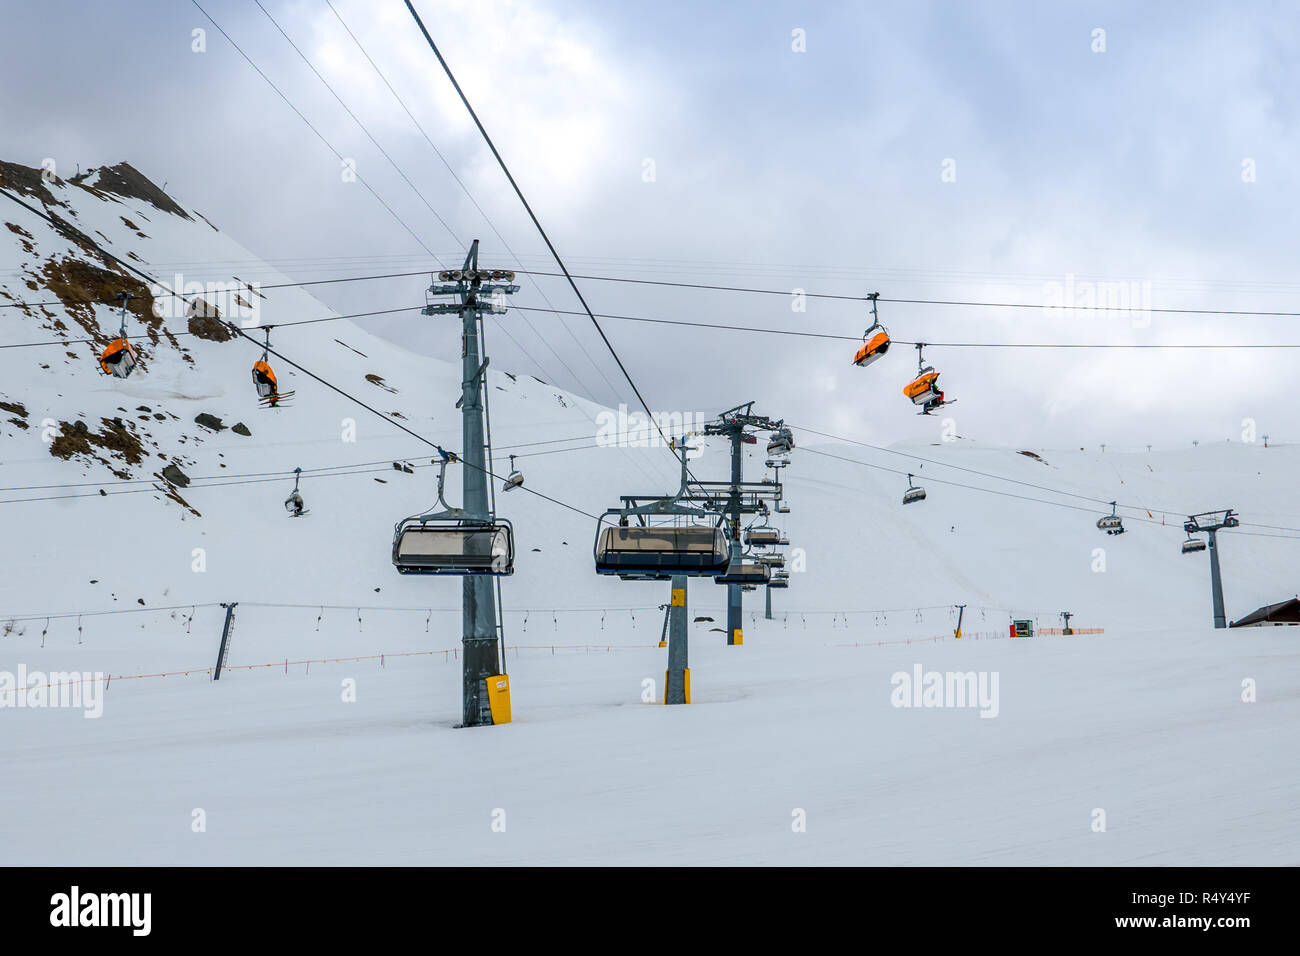 Multiple levels of chairlifts operating in ski resort Stock Photo